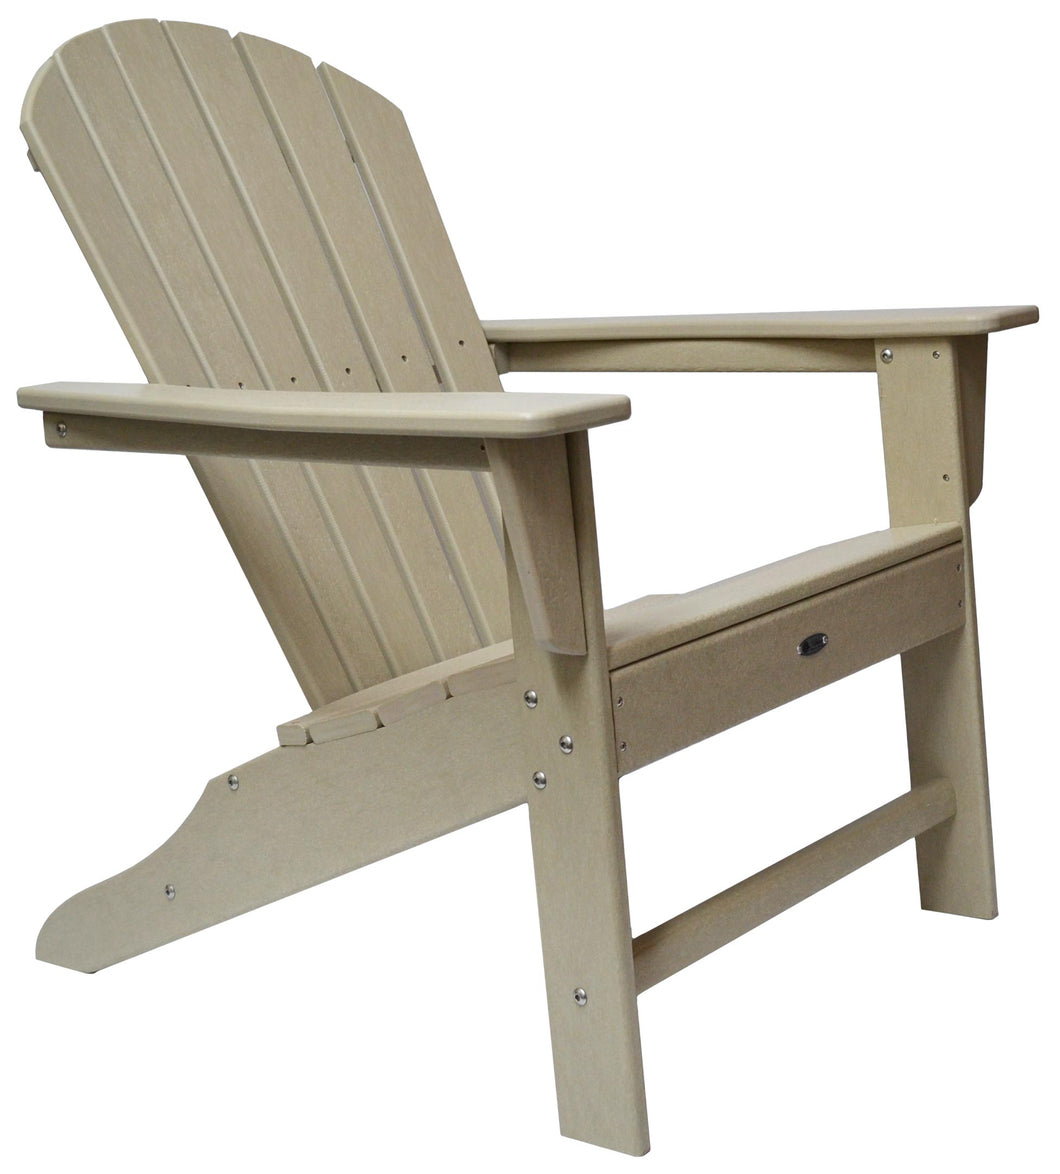 Atlas Patio Furniture - Surf City Poly Adirondack Chair - Color: Sand